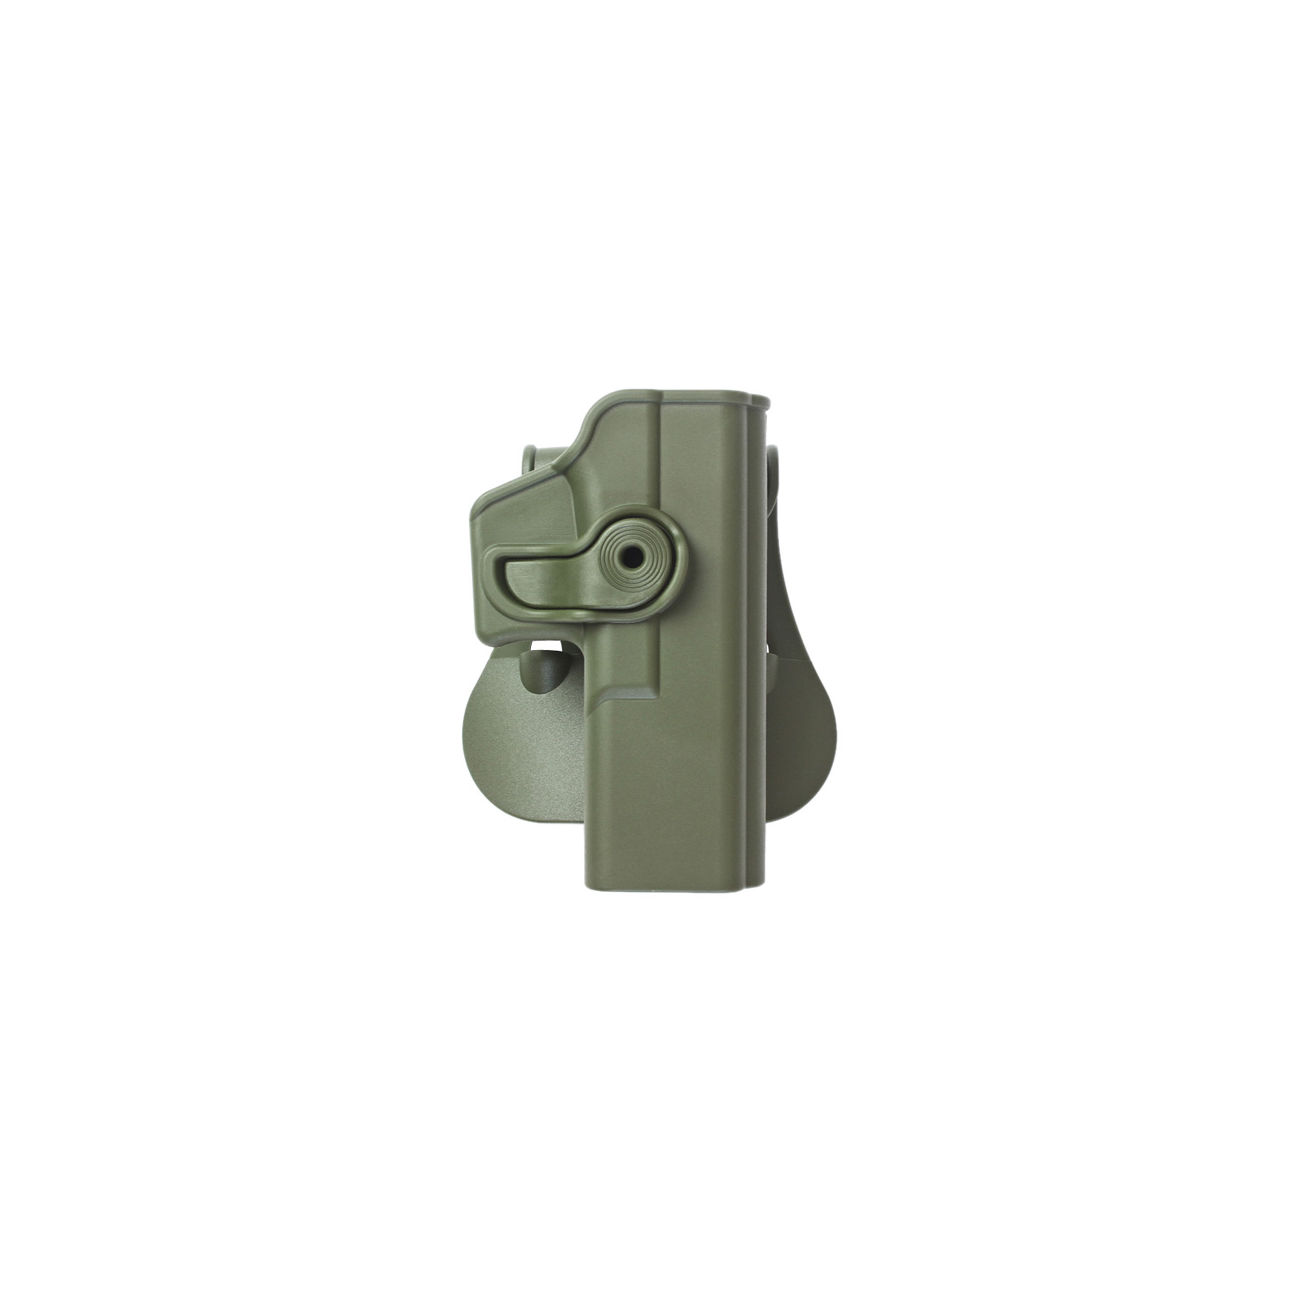 IMI Defense Level 2 Holster Kunststoff Paddle für G 17/22/28/31/34 OD 0